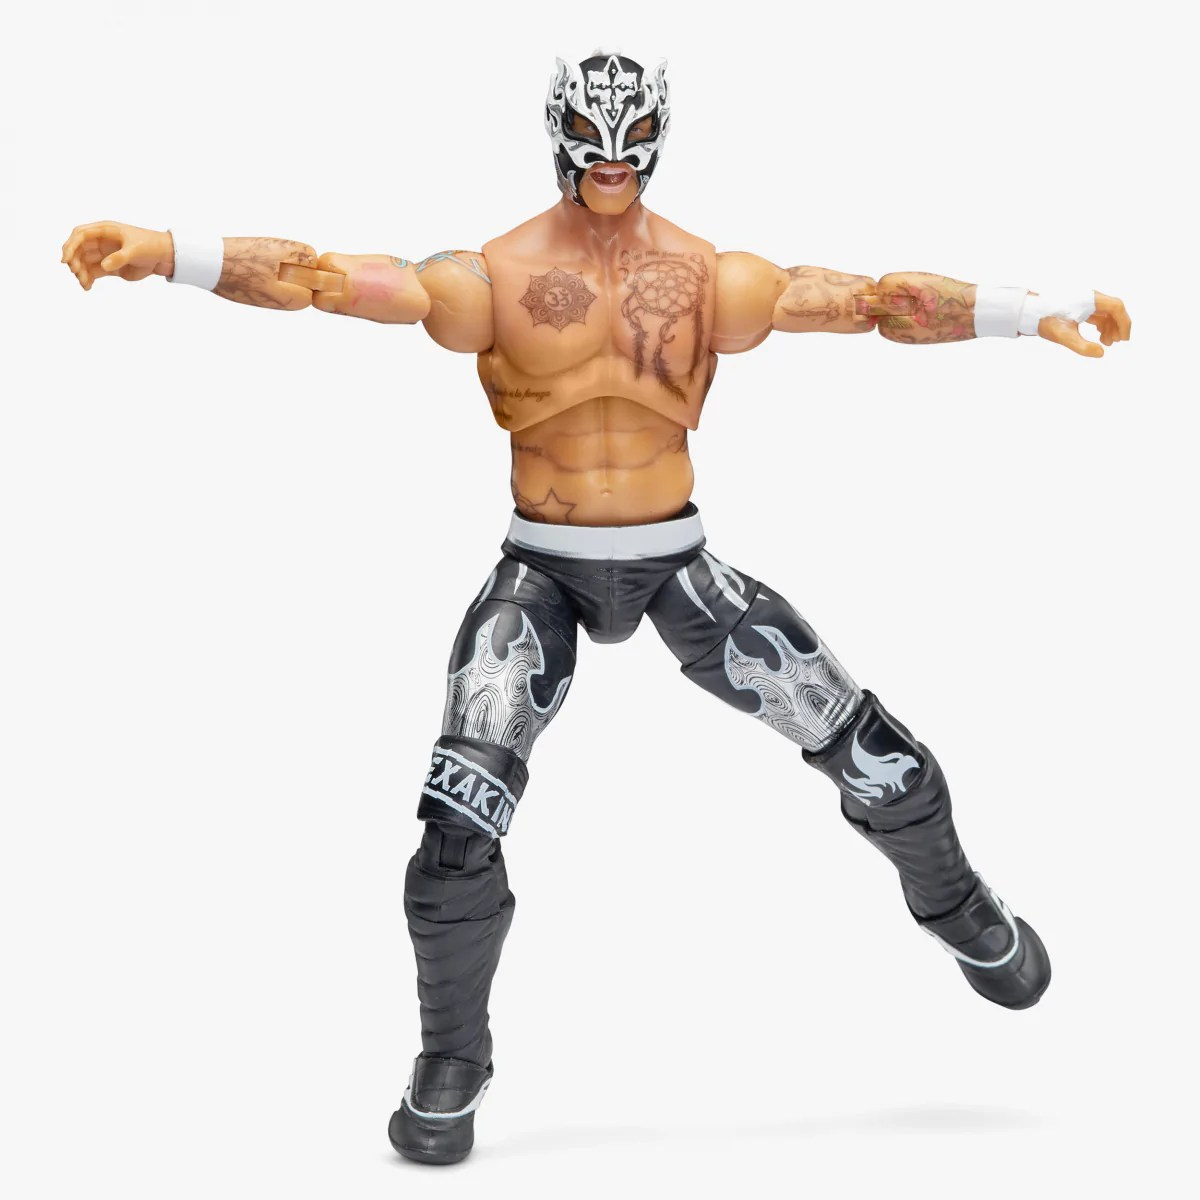 Aew Unrivaled Series 2 Pentagon Rey Fenix Reign City Toys And Collectibles